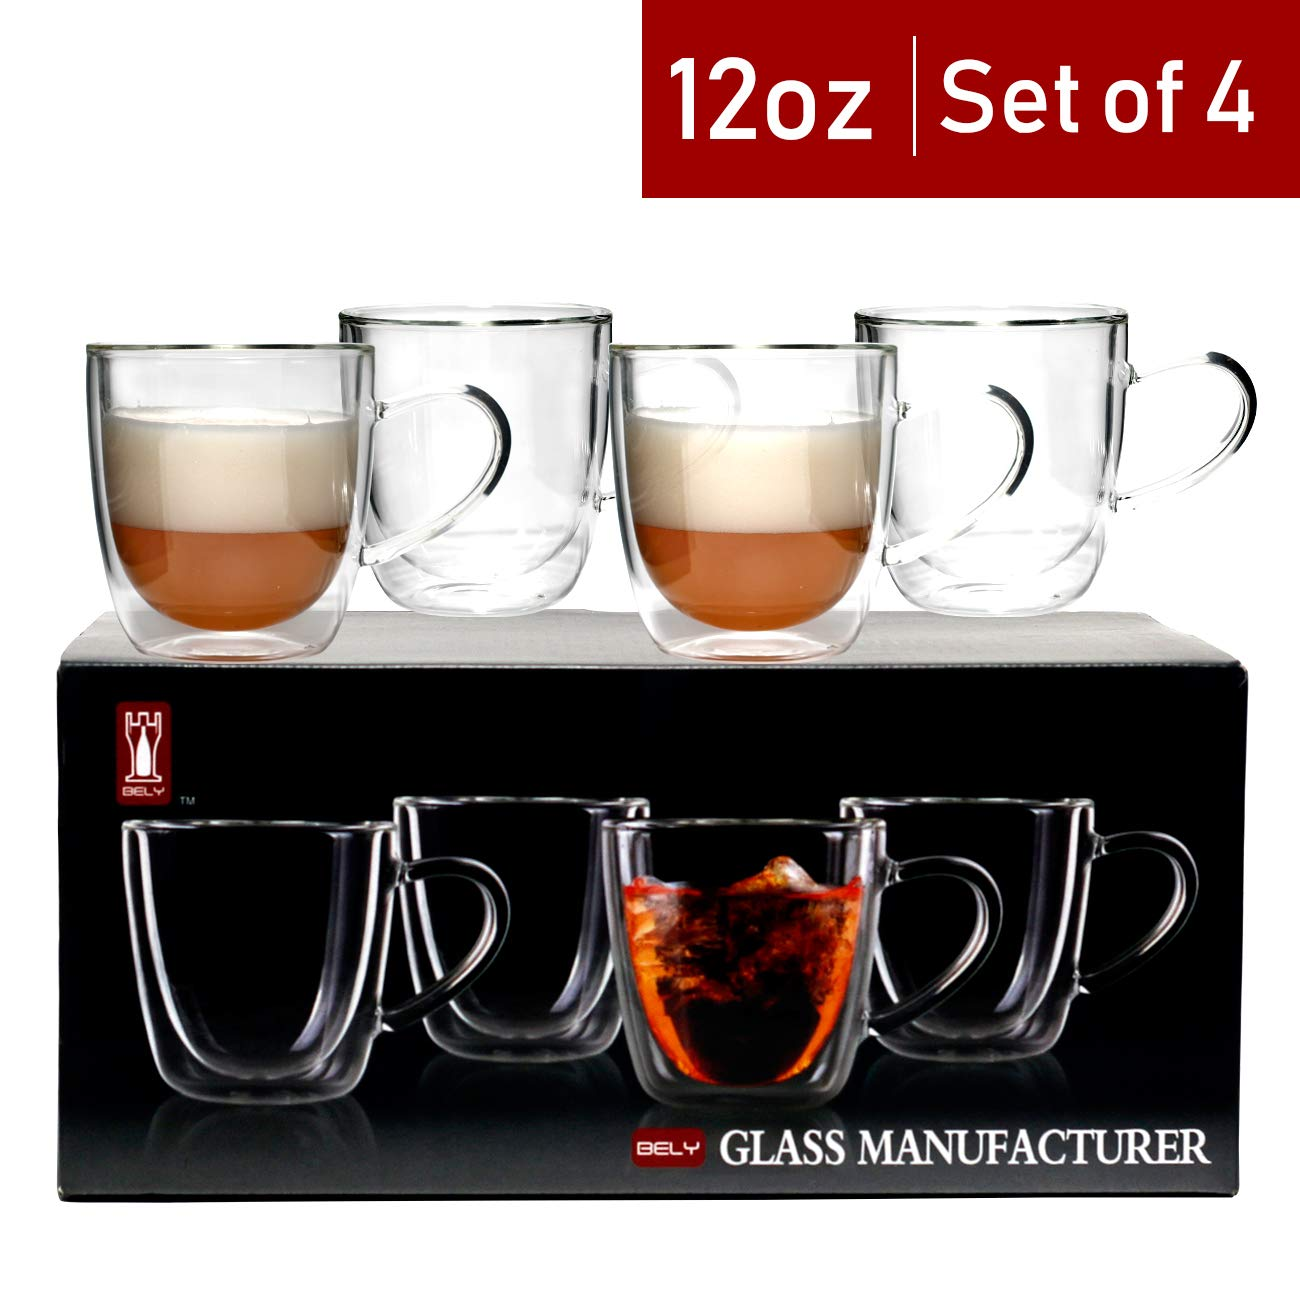 Bely Strong Double Wall Insulated Glass Coffee Mugs/Tea Cups With Handle Set of 4,Clear,12-Ounces